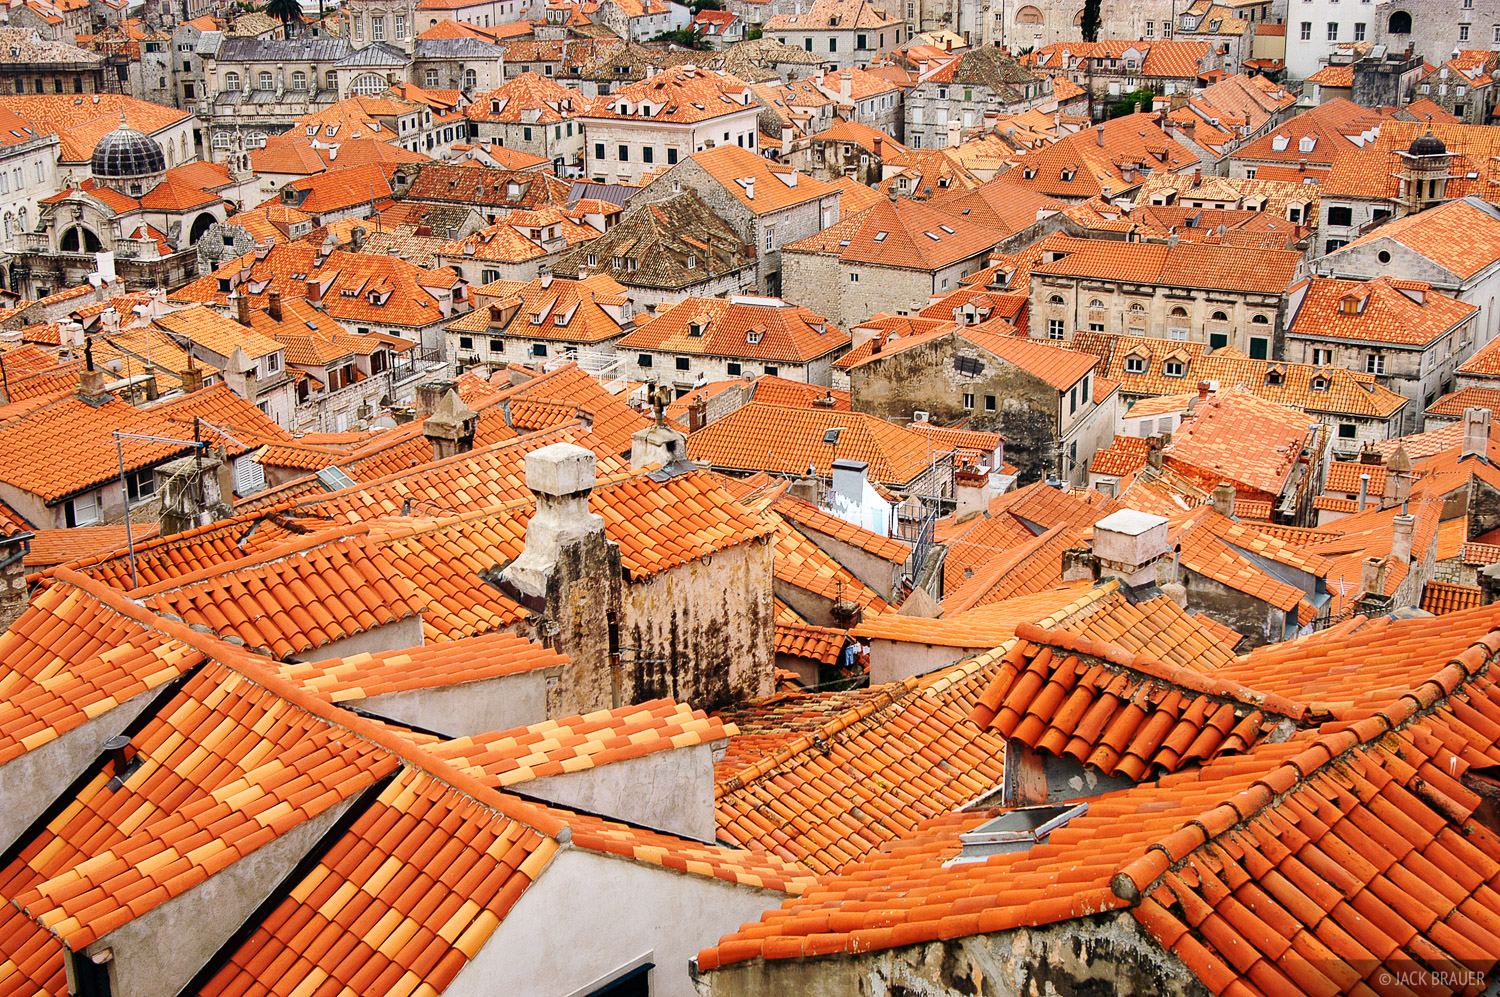 Dubrovnik, walled city, rooftops, Croatia, photo